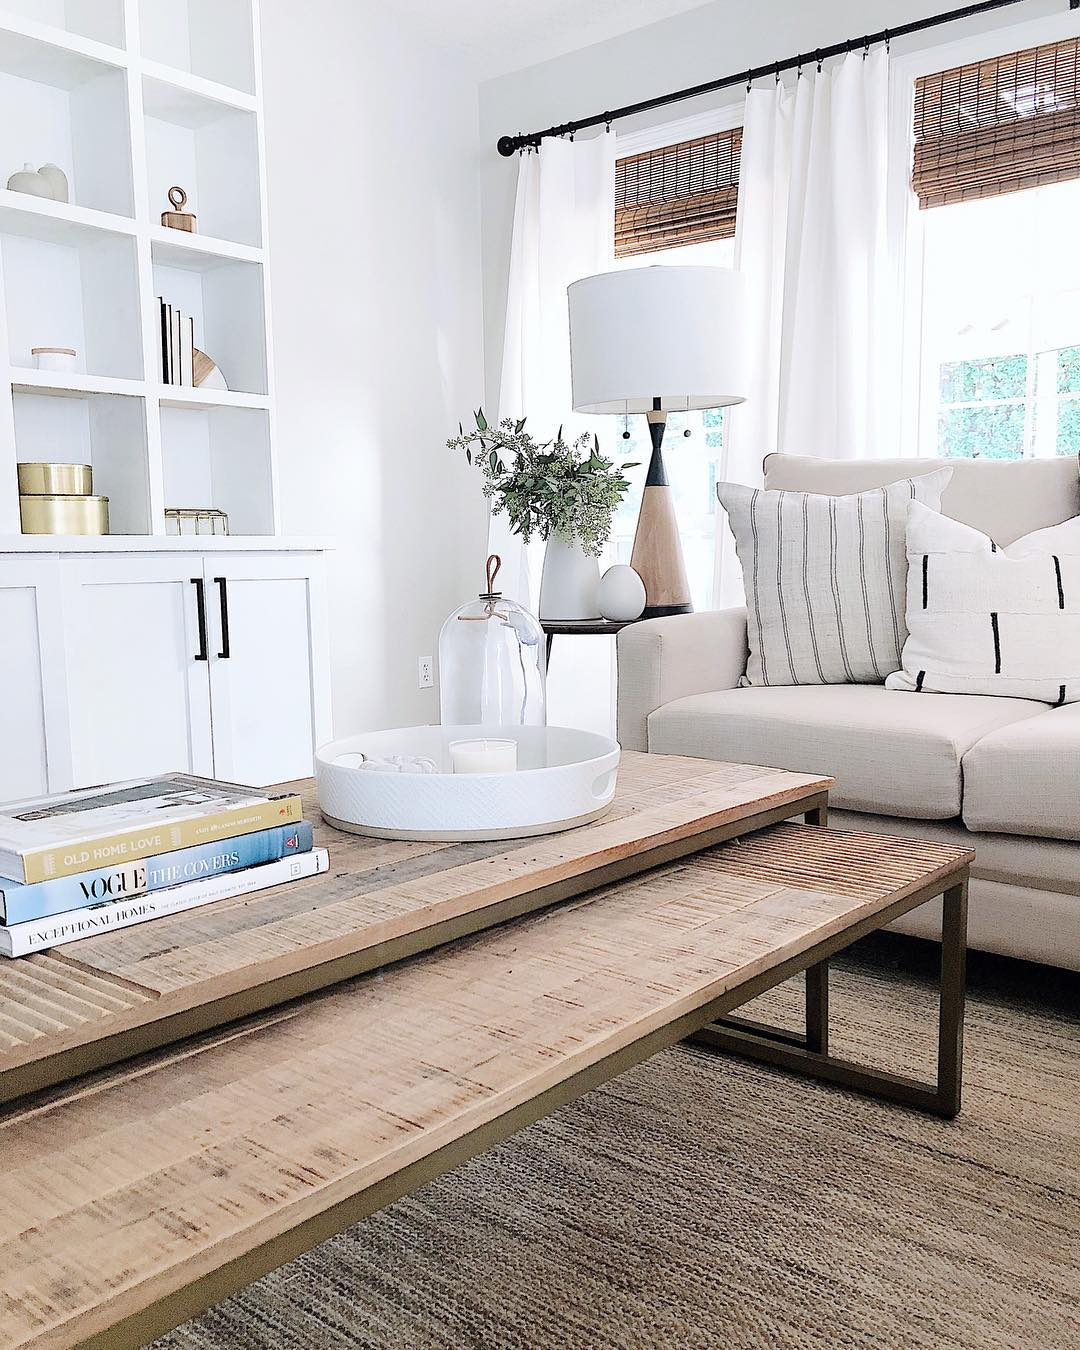 Mango wood coffee table in Neutral toned living room